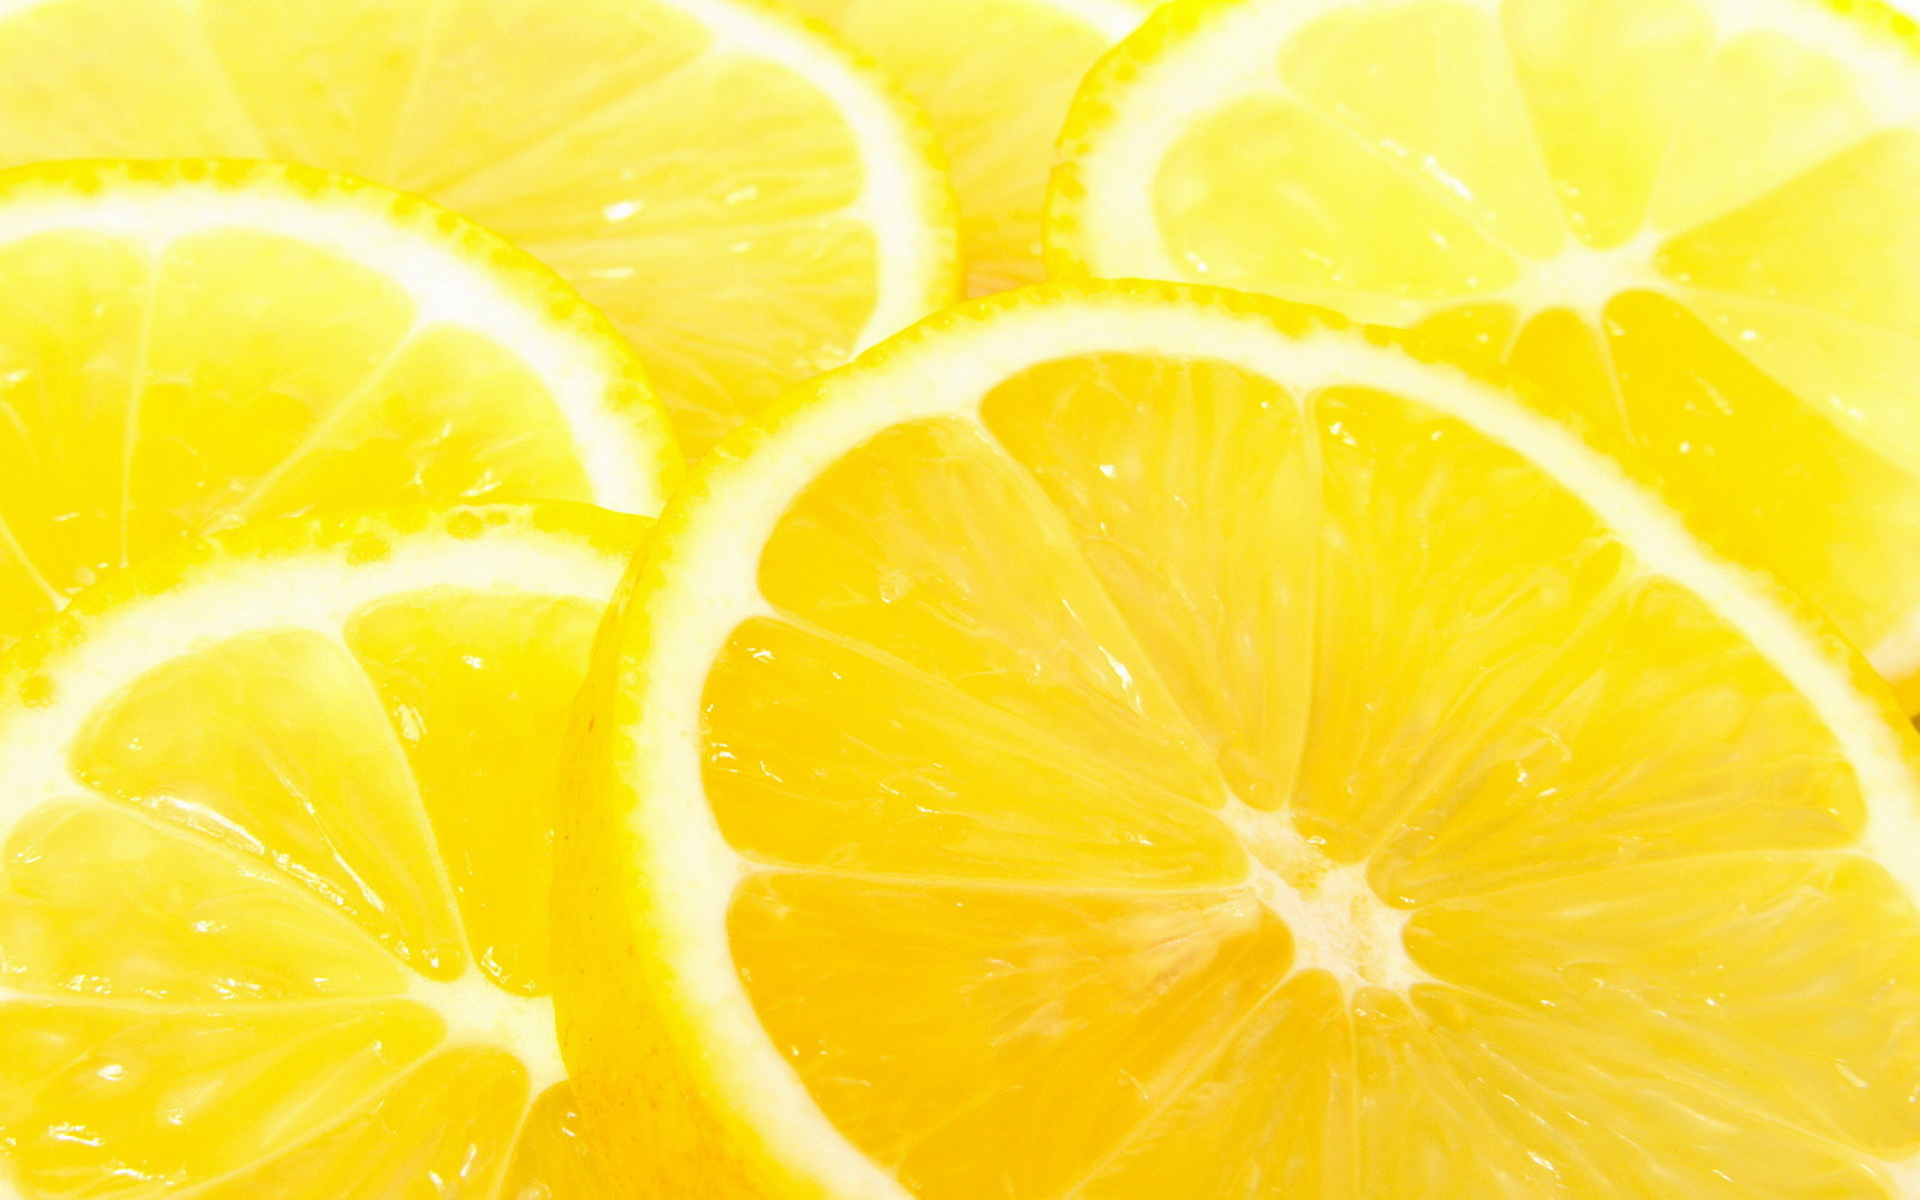 ... Lemon Wallpaper ...